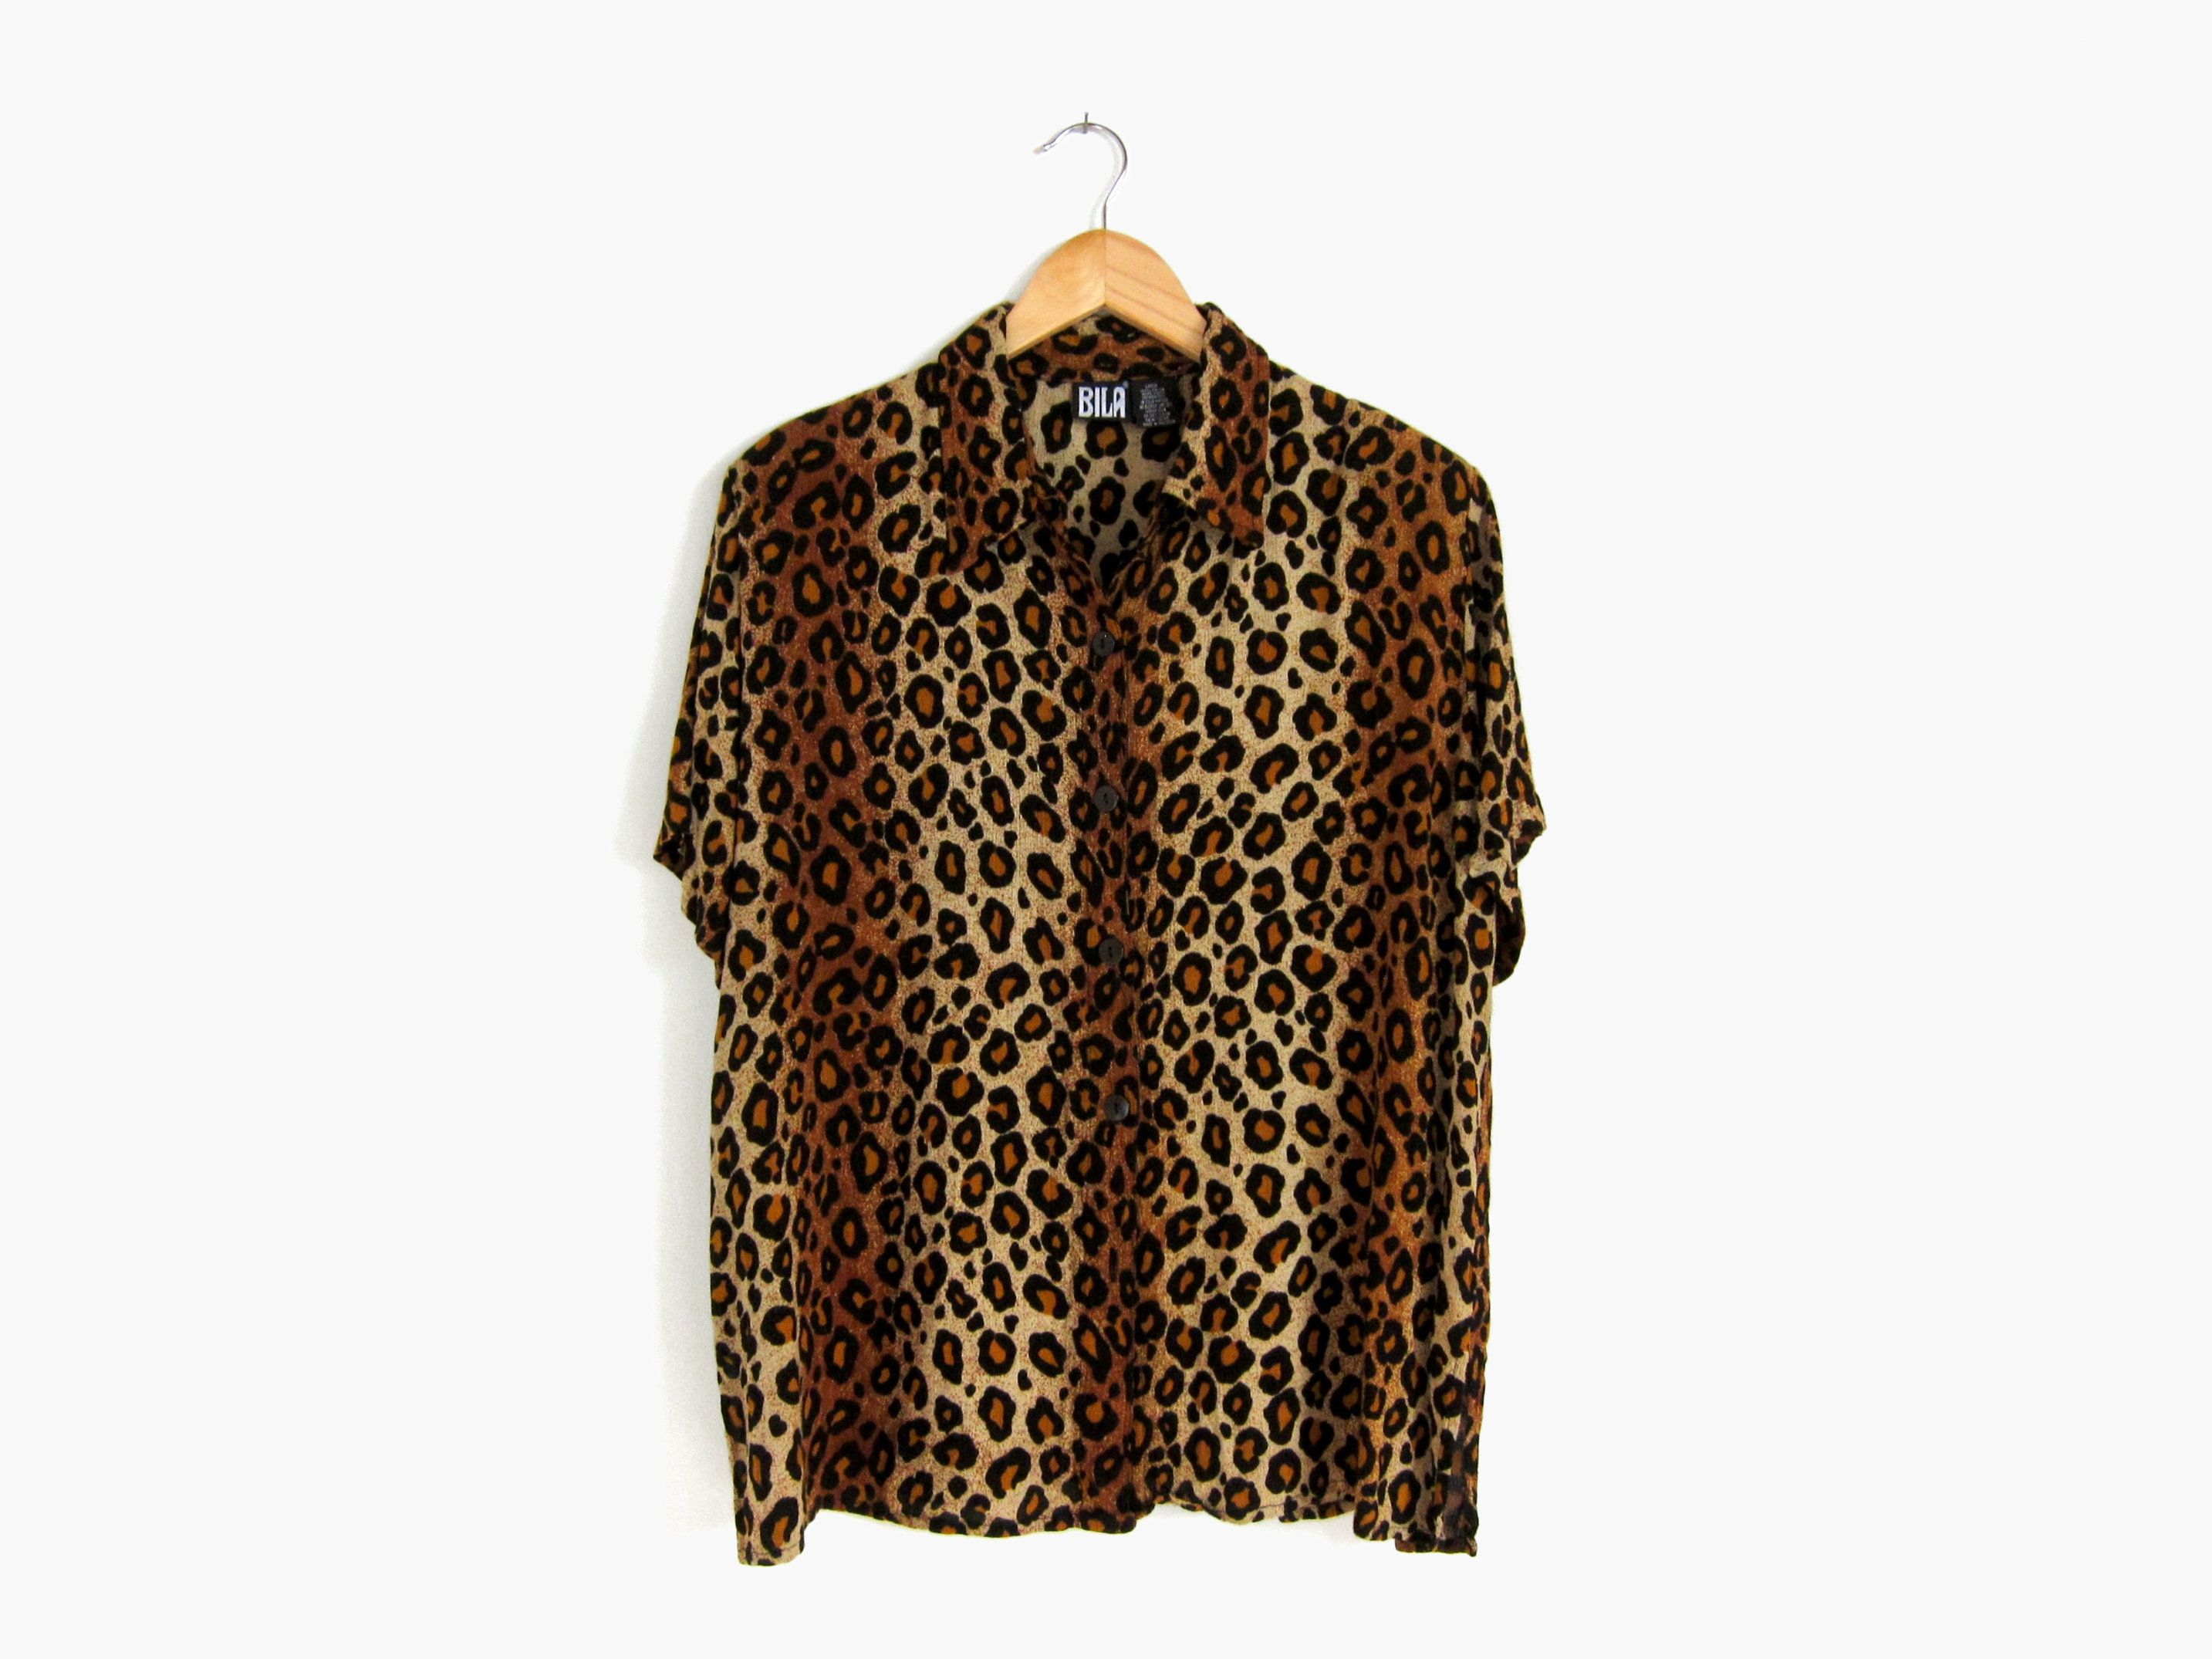 90s Leopard Print Shirt Relaxed Collared Top Slouchy Short Etsy Leopard Print Shirt Floral Collared Shirt Printed Shirts [ 2150 x 2867 Pixel ]